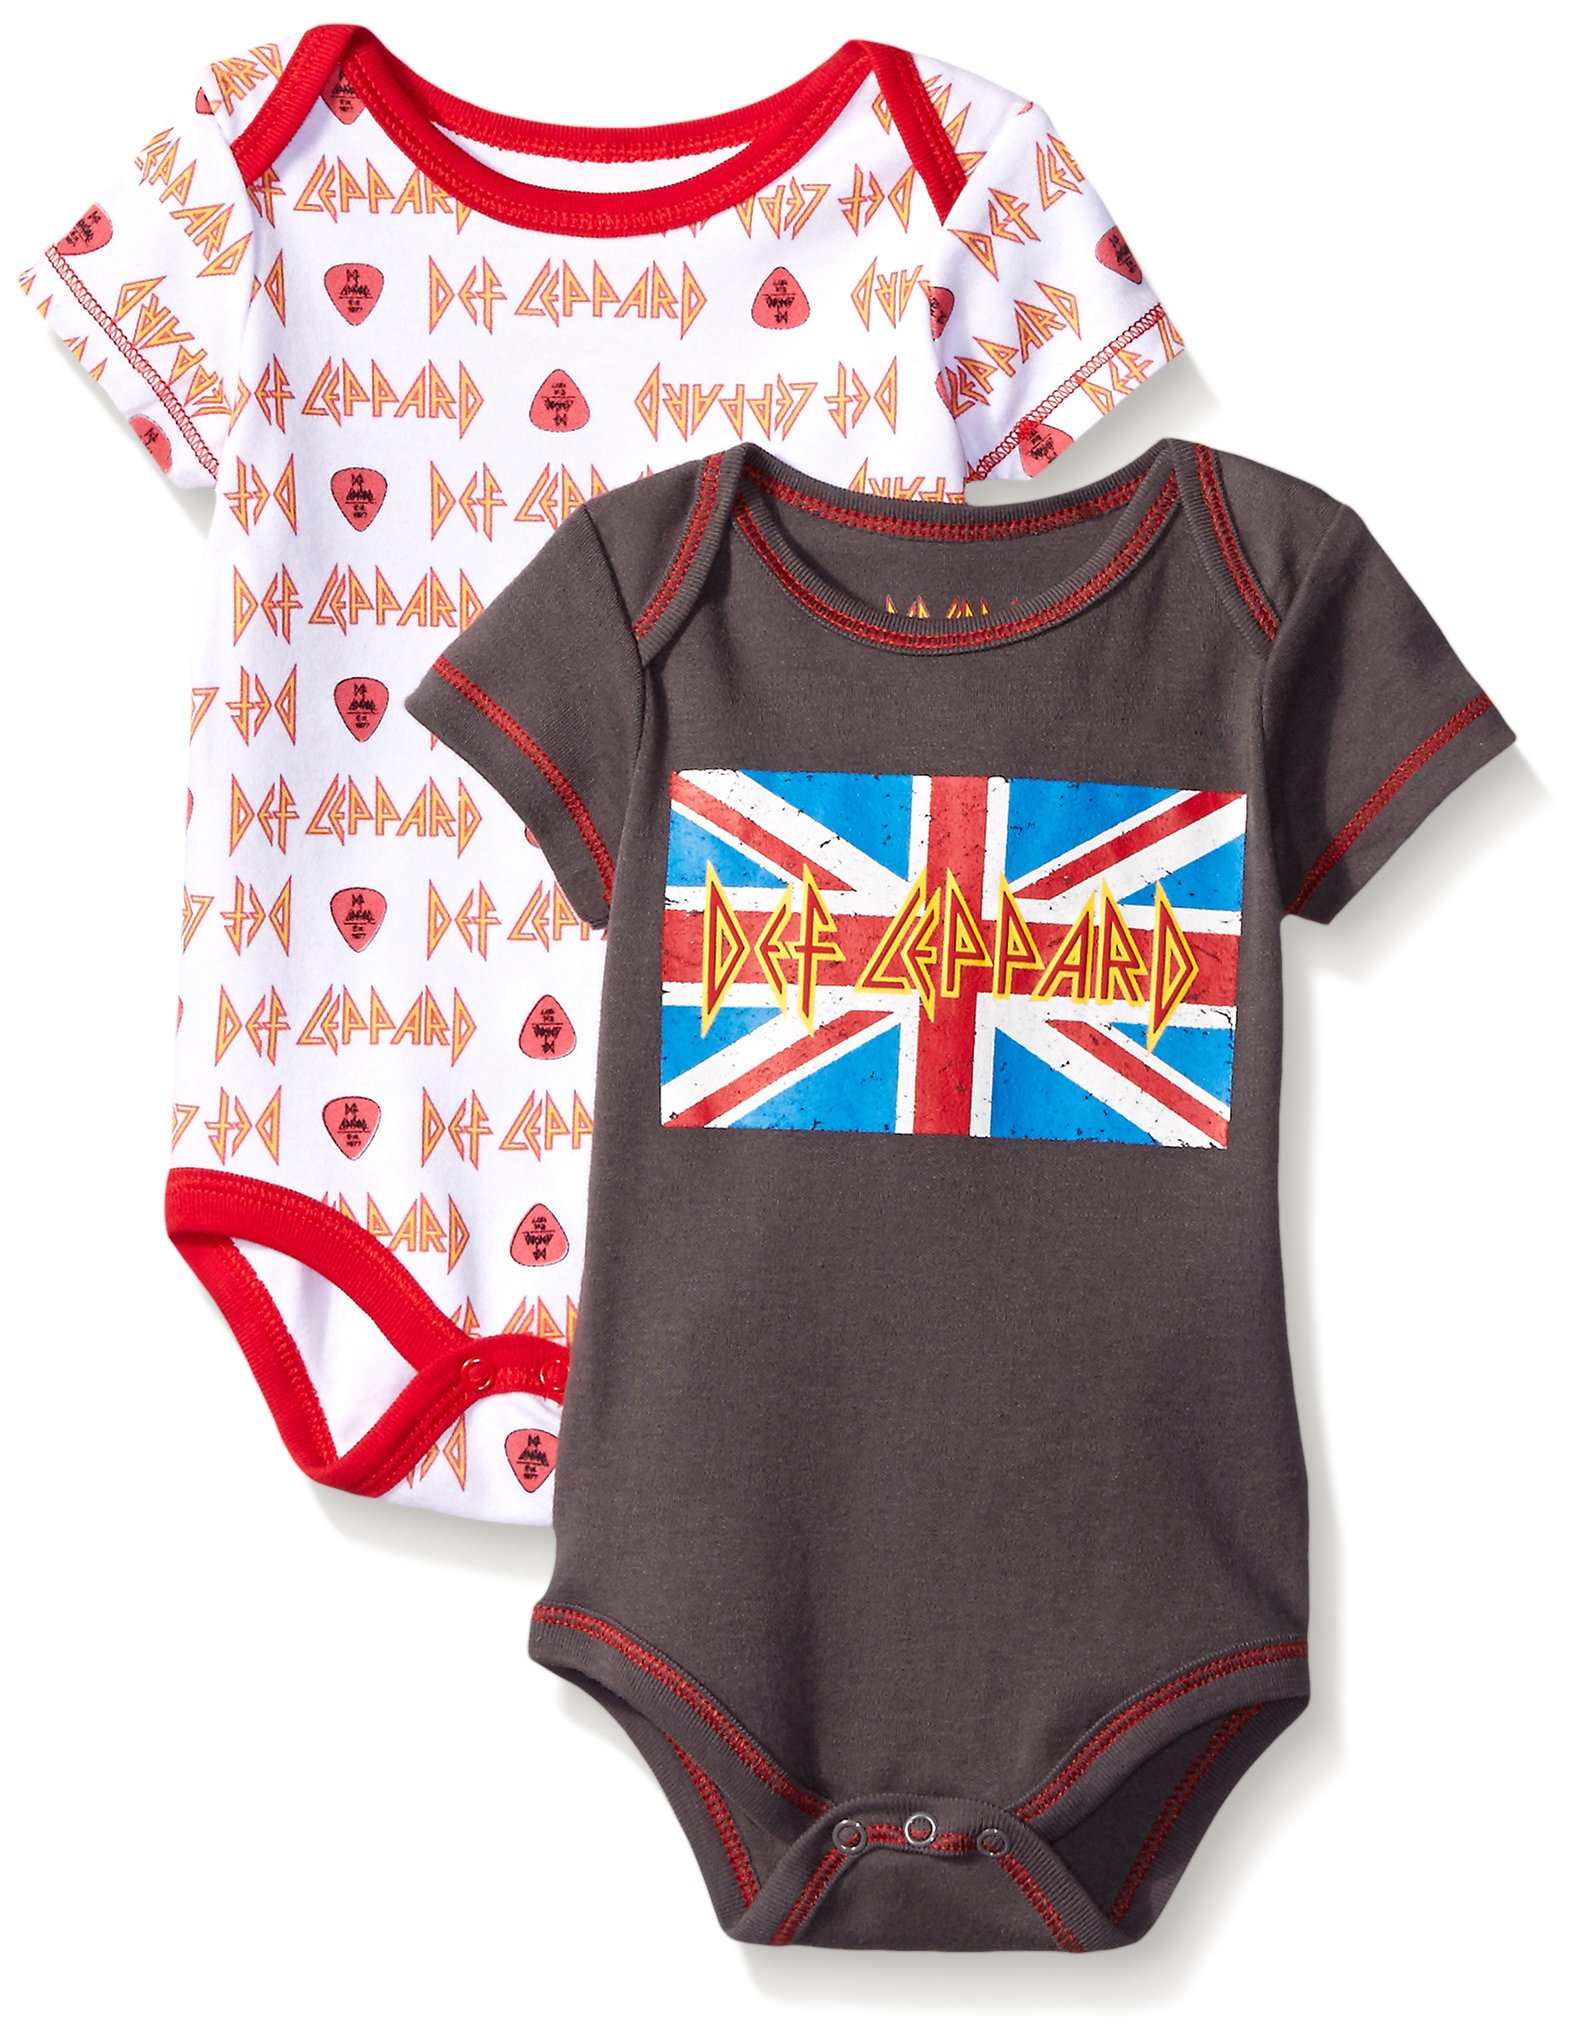 Def Leppard Baby Boys' Two 2 Pack Bodysuit, Gray, 3-6 Months